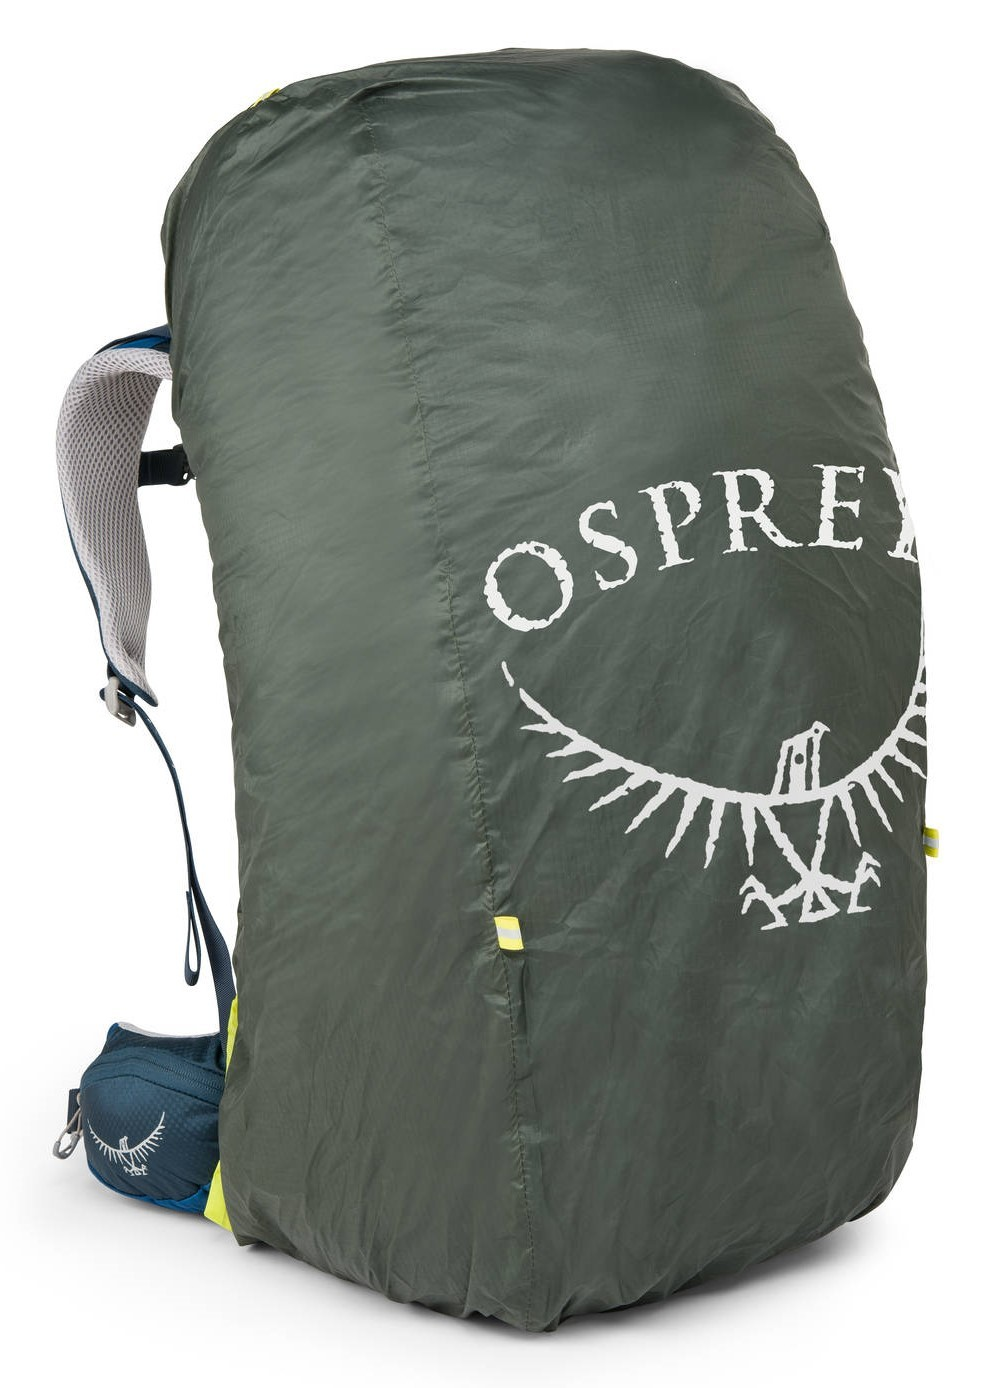 Аксессуары Чехол от дождя Osprey Ultralight Raincover M (30-50 л) UL_Raincover_Side_Shadow_Grey_web.jpg